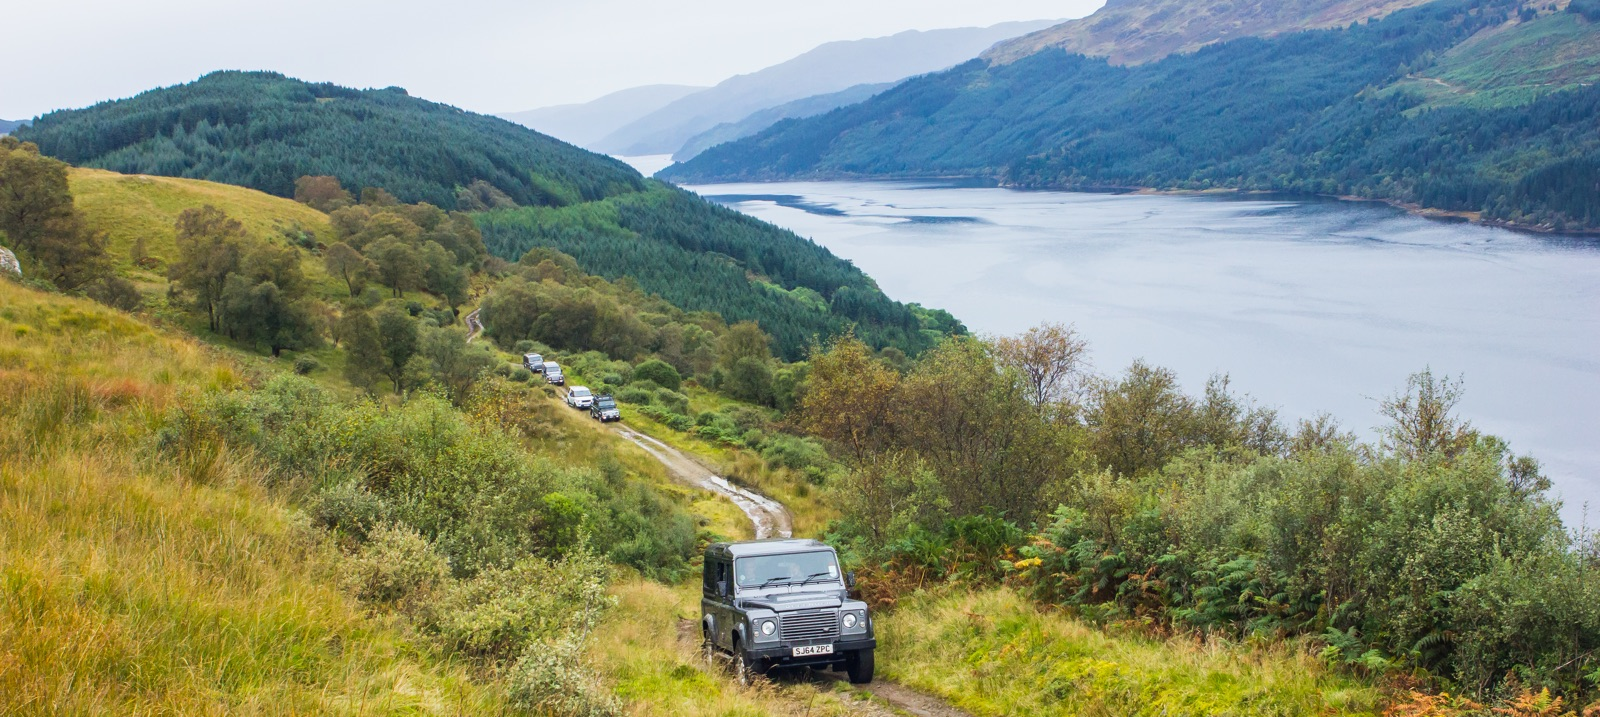 Private Loch Lomond Own 4x4 Experience